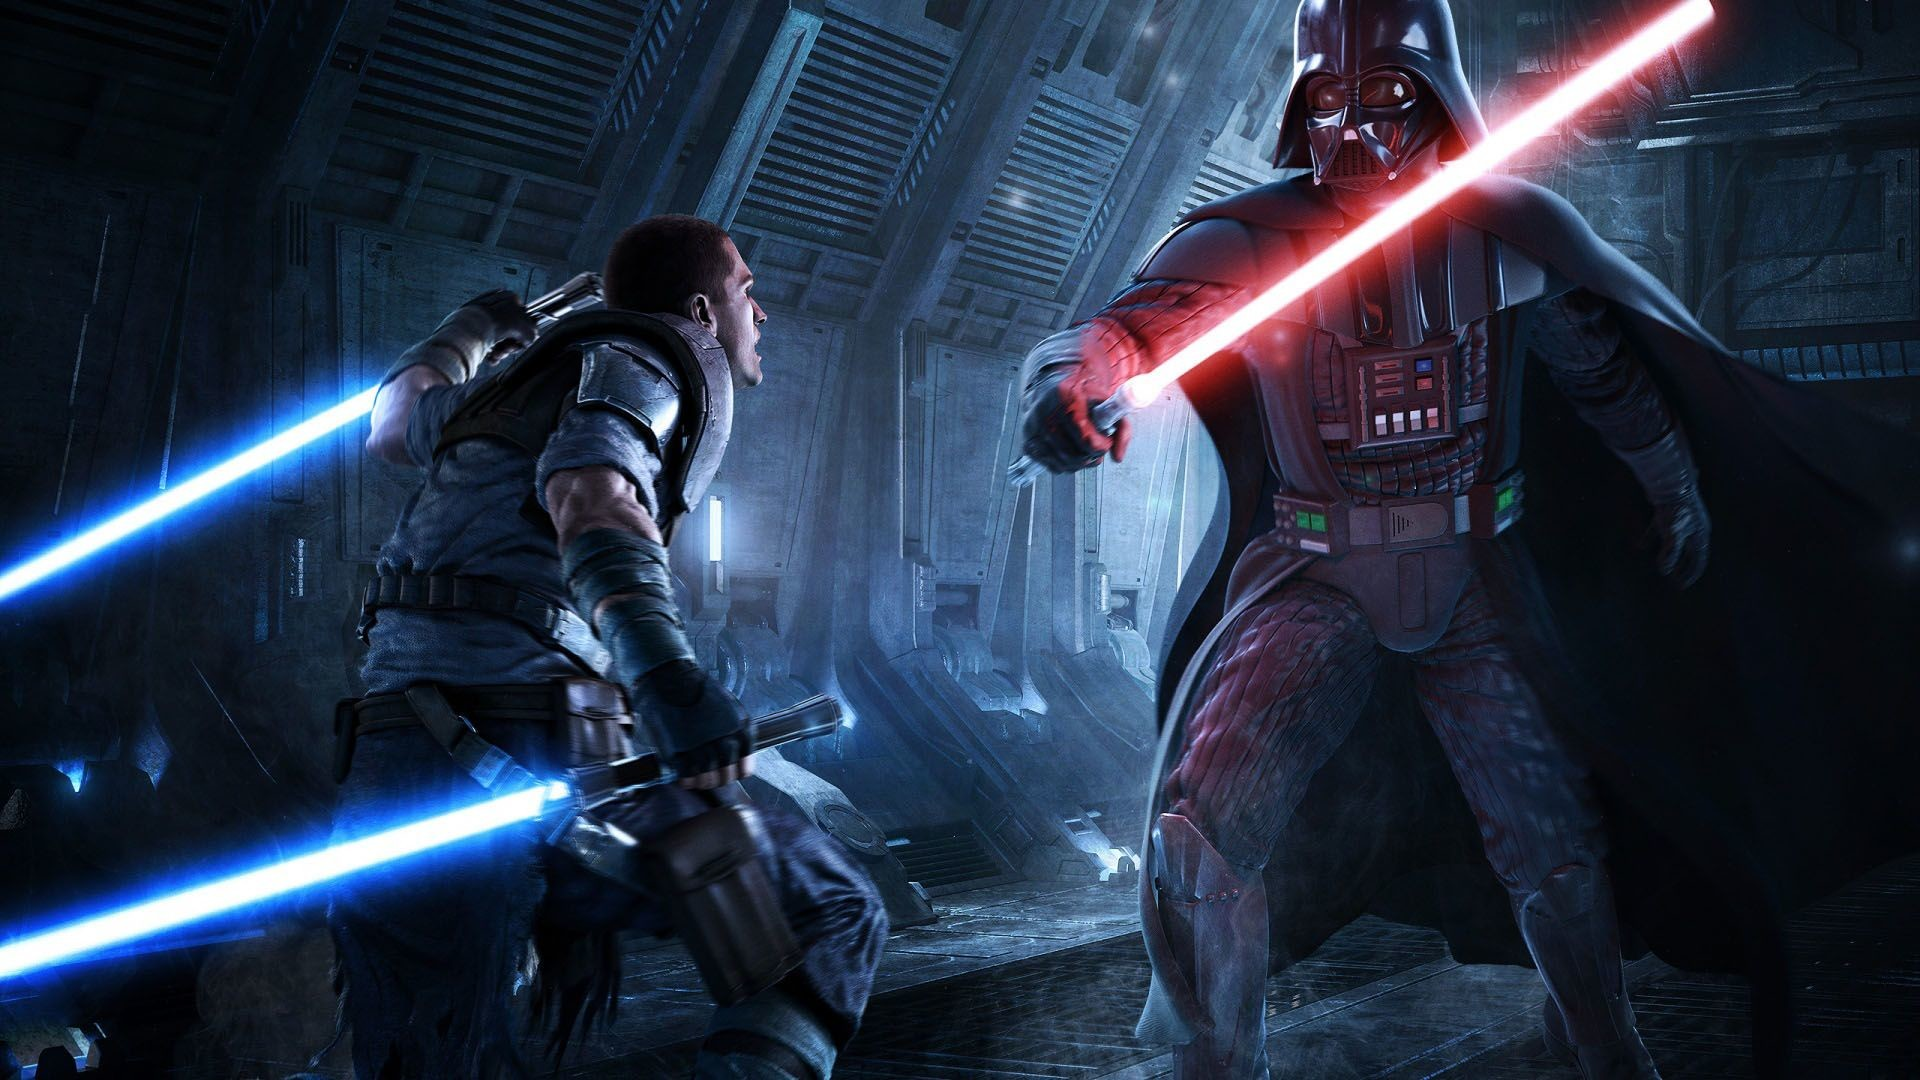 Res: 1920x1080, sith vs | Wallpapers Star Wars the Old Republic for iPhone, Android